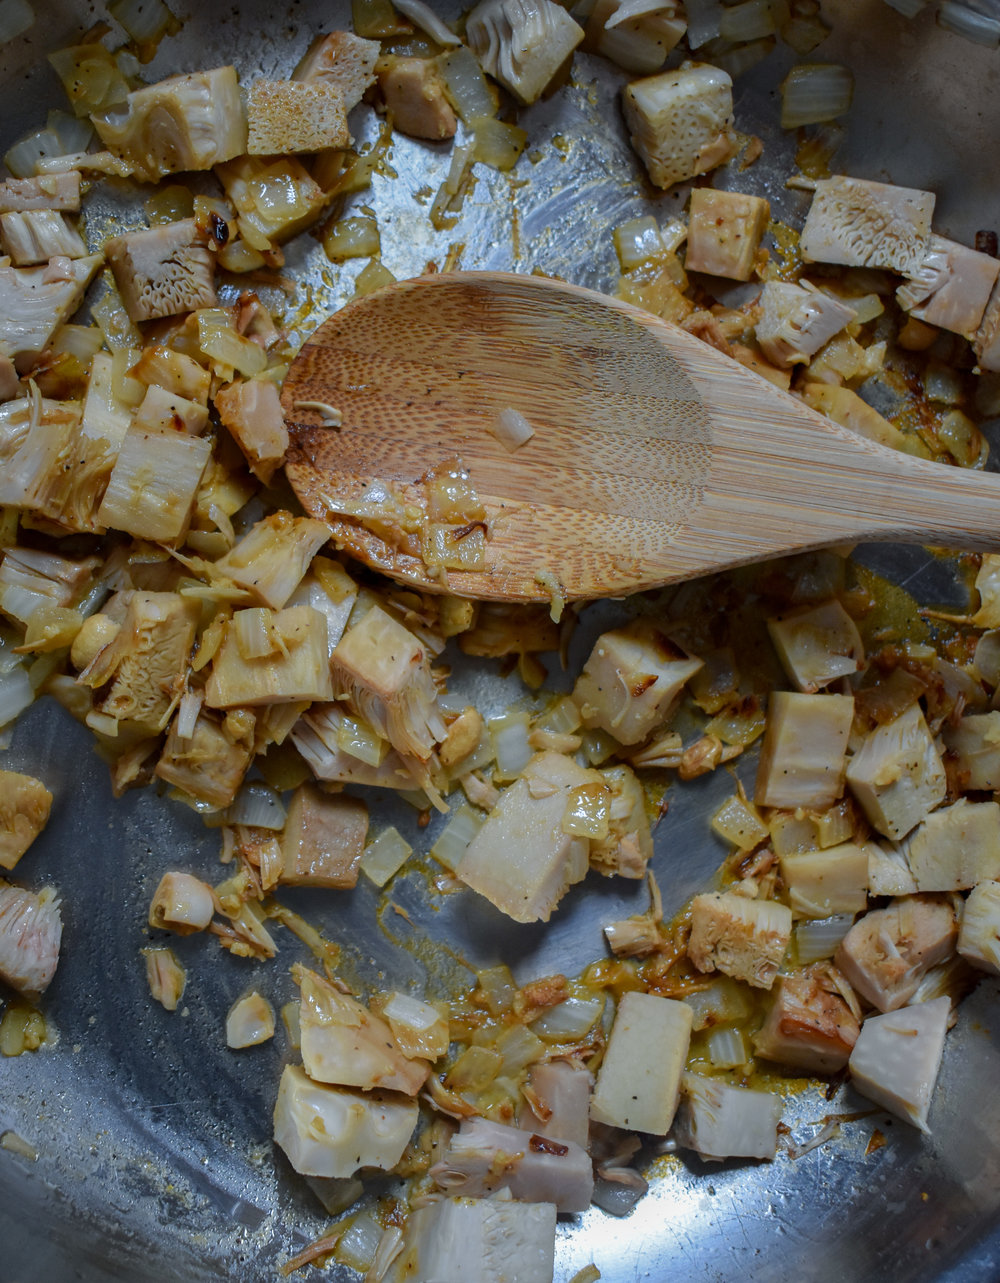 3. To start the jackfruit, add shallots to a large frying pan with a bit of sesame oil. Cook for 4-5 minutes then add in jackfruit and cook for 6-8 minutes over medium heat. Add marinade and turn heat to low-medium. Simmer for 10-15 minutes until jackfruit is soft and breaks apart as you mix it.